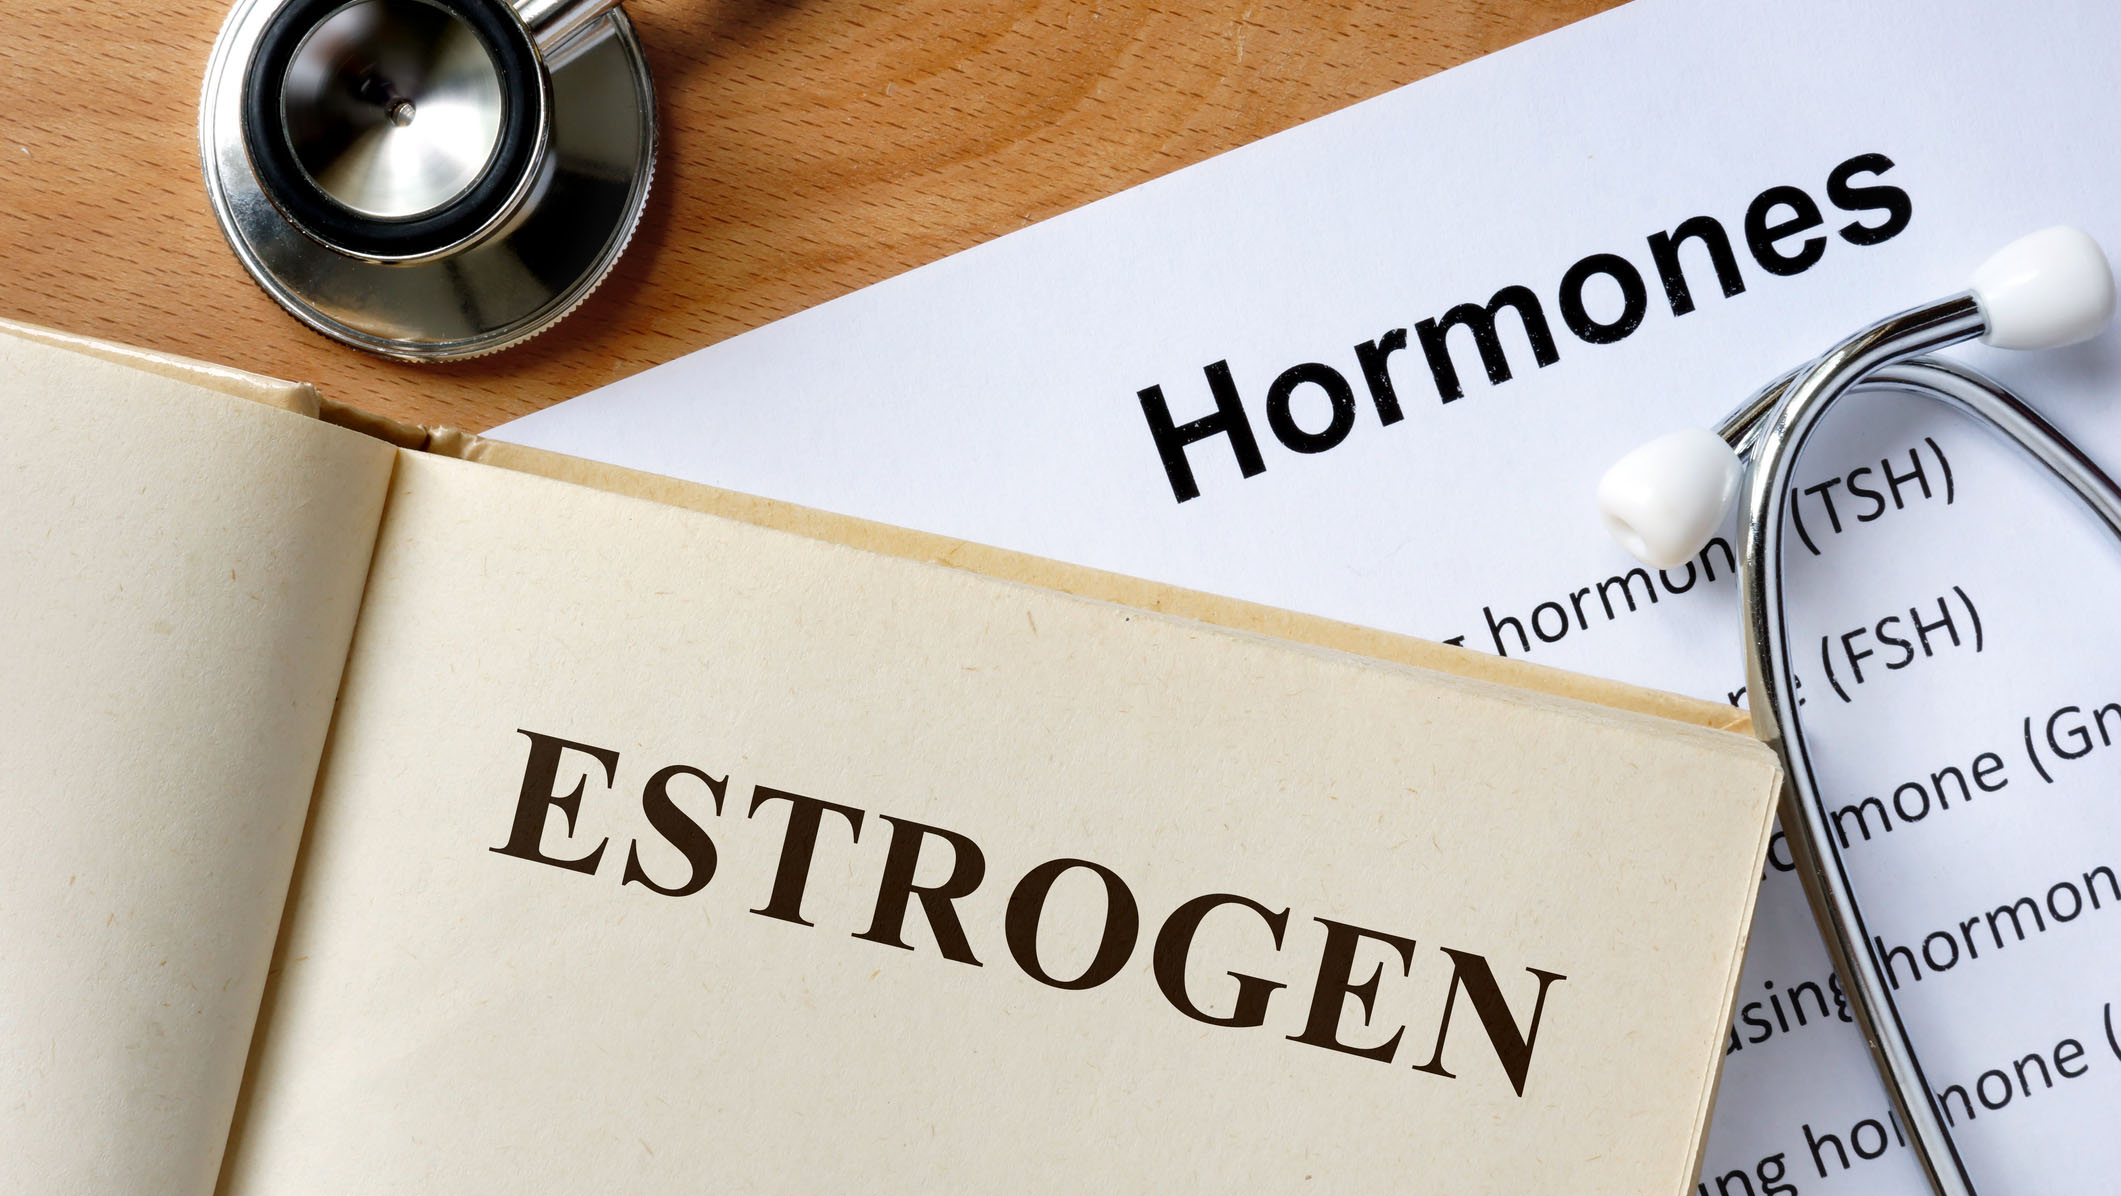 Book and article on estrogen and hormones